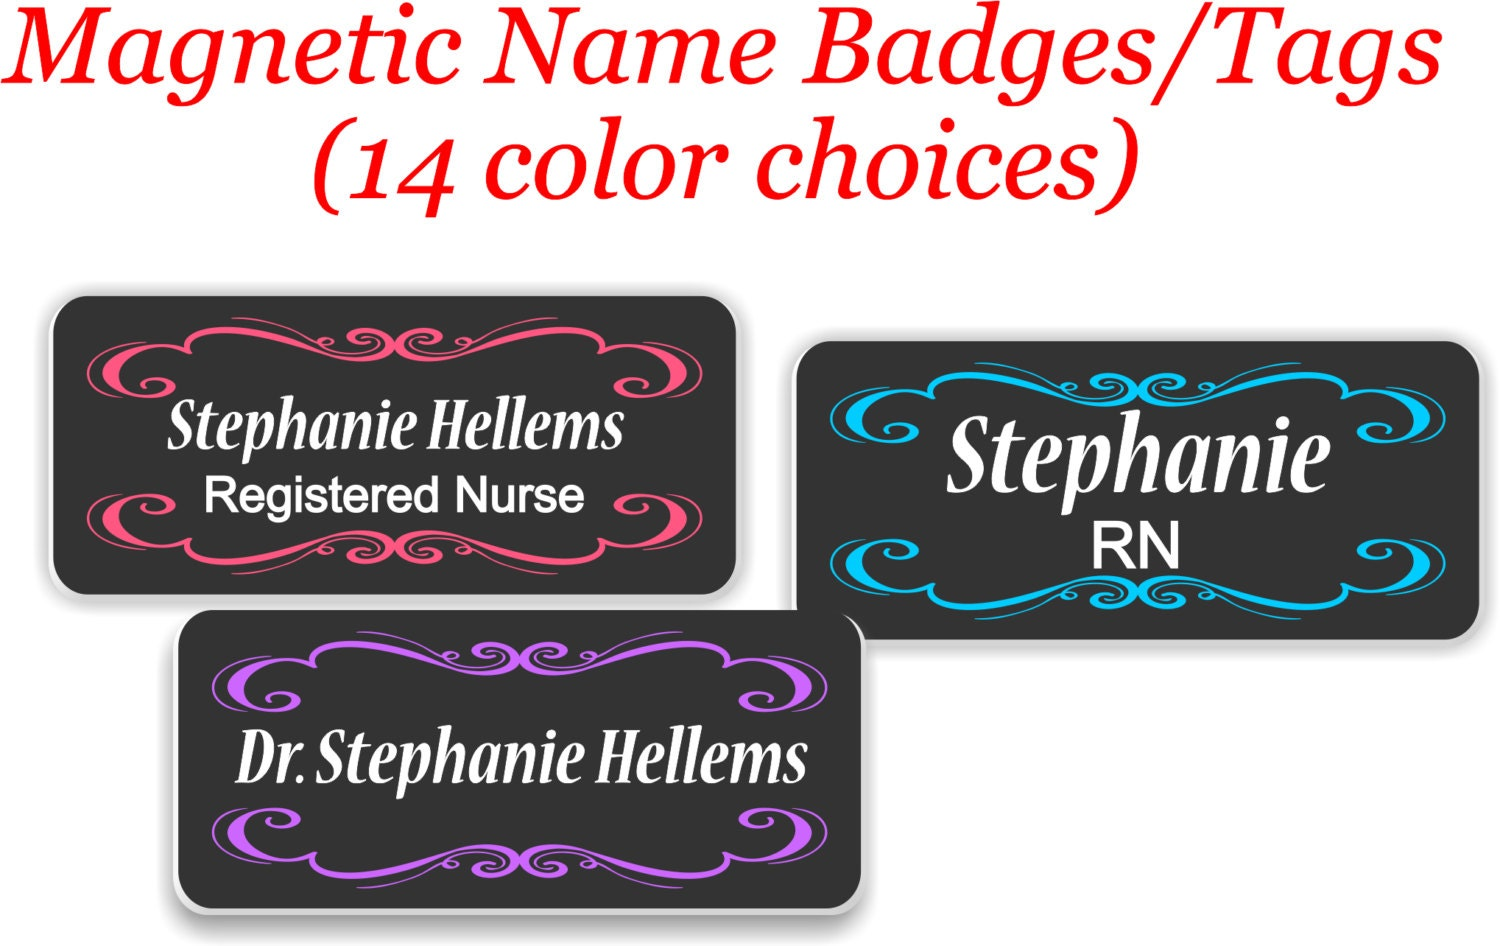 Name Badge: Name Badges With Magnetic Fastener Magnetic Name Badge/Tag